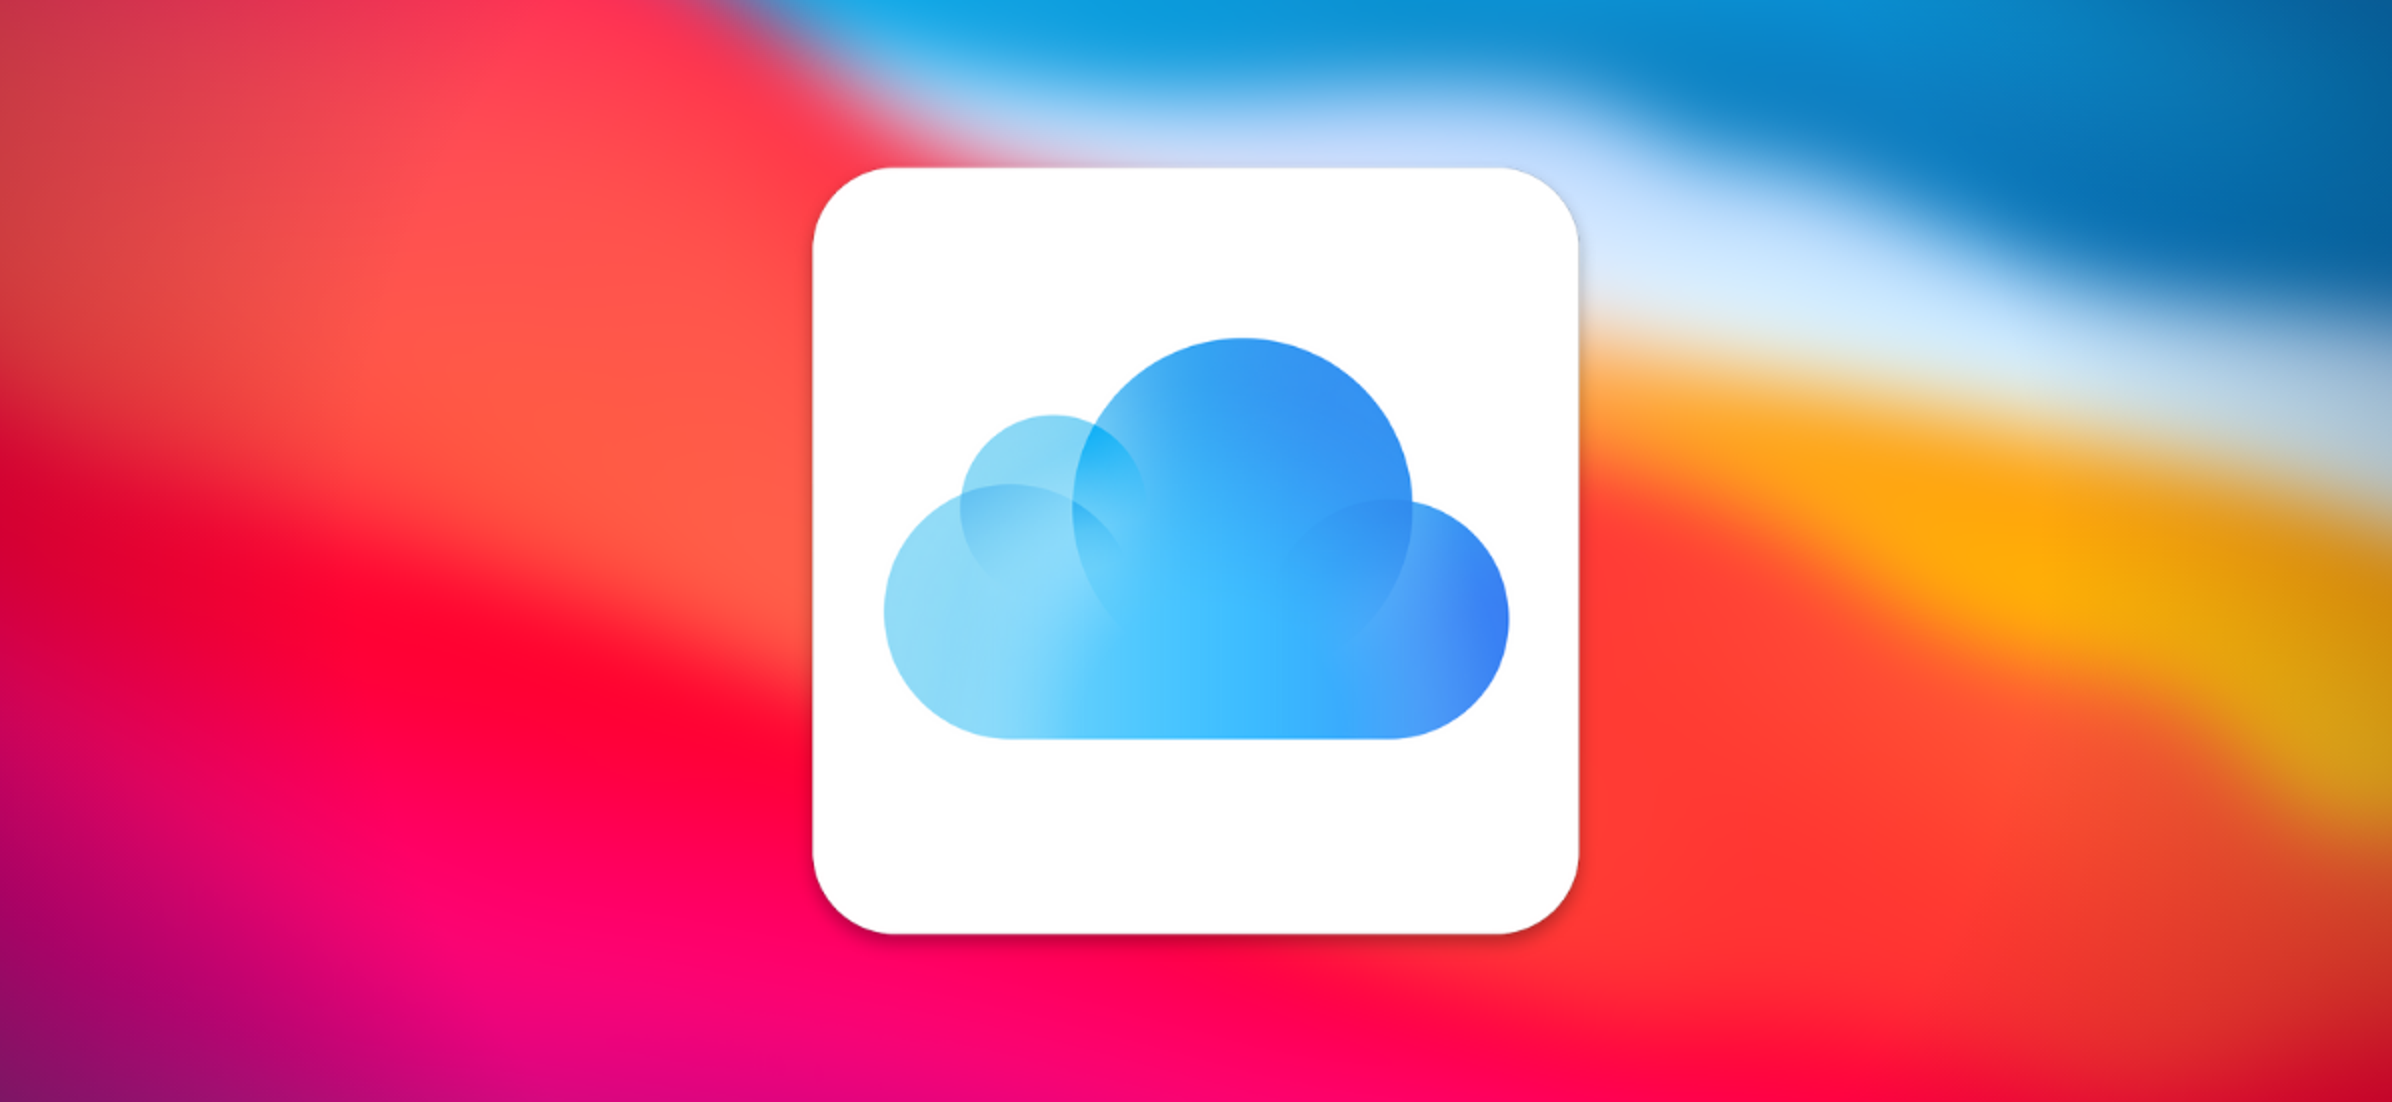 How to Disable iCloud Sync for Desktop and Documents Folders on Mac